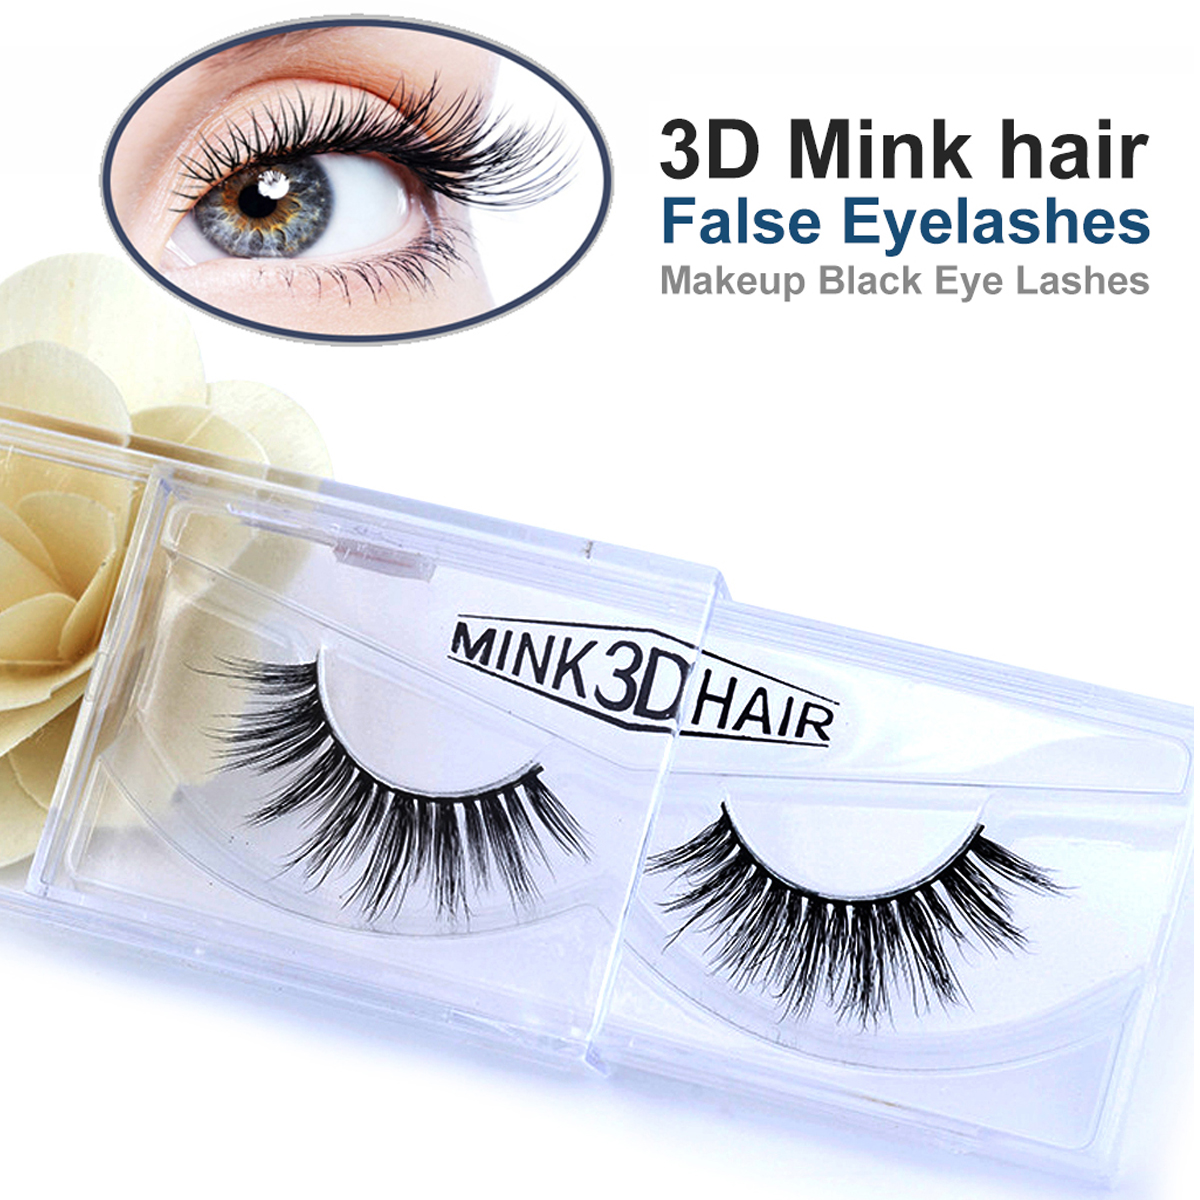 Luxurious Real 3D Mink False Eyelashes Cross Natural Long Fake Eye Lashes Makeup Reusable